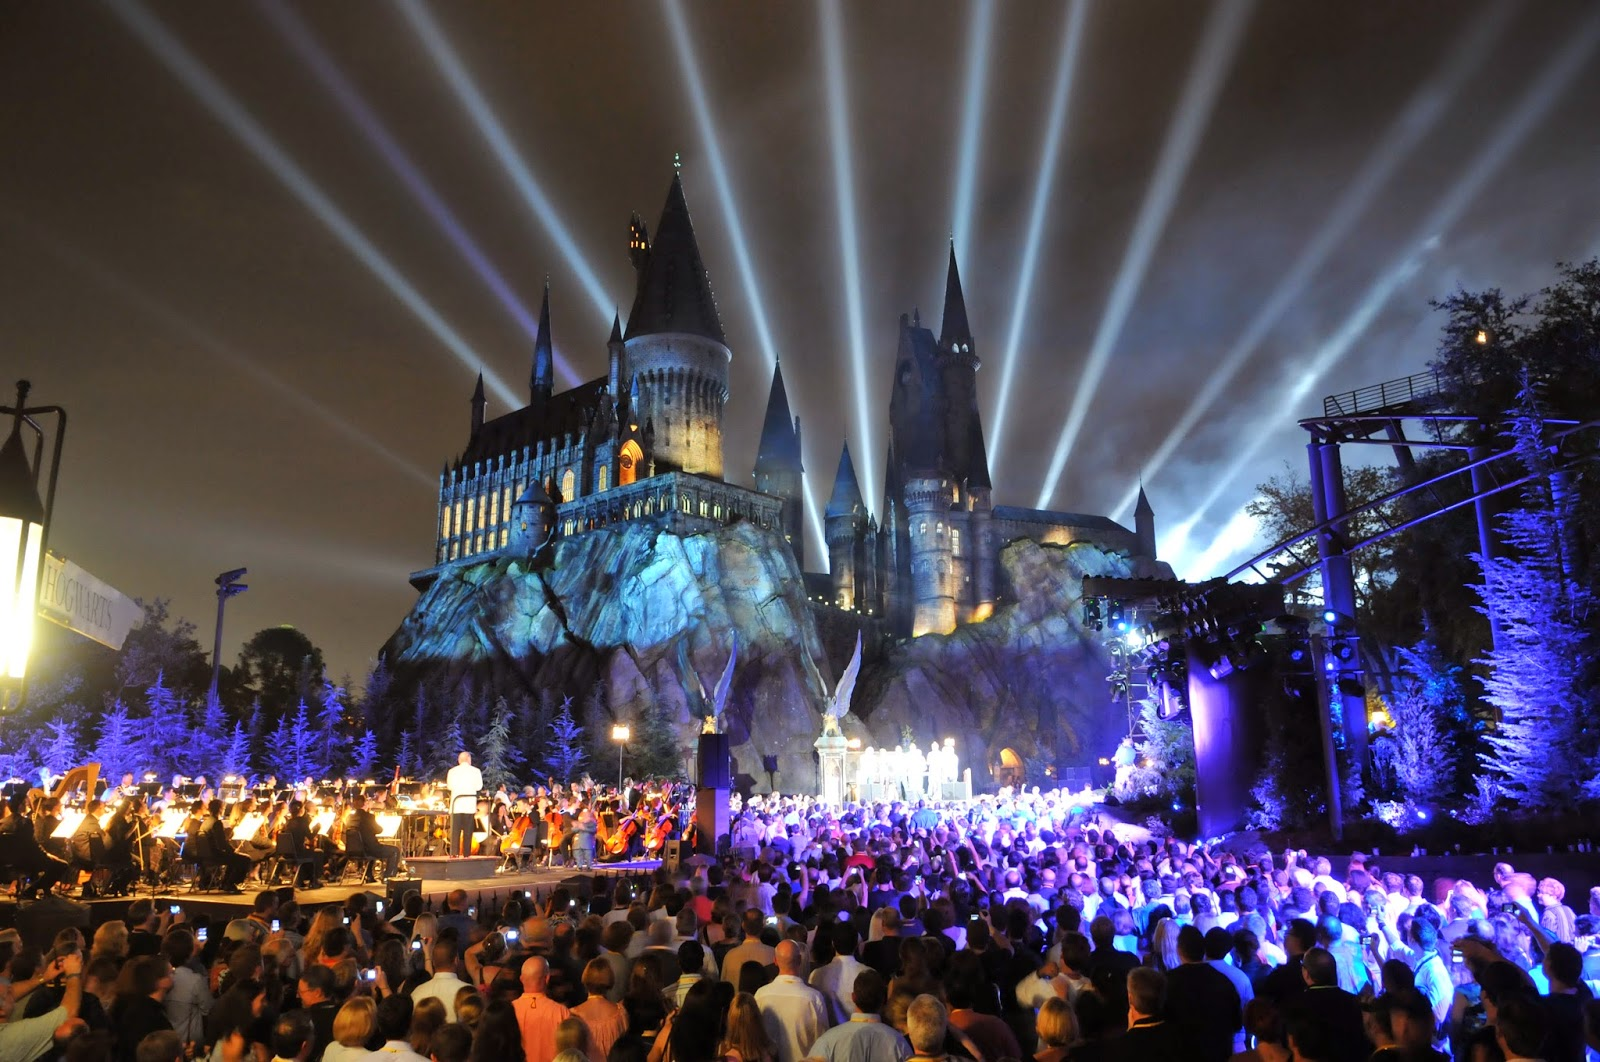 What we want at Japan's Wizarding World of Harry Potter